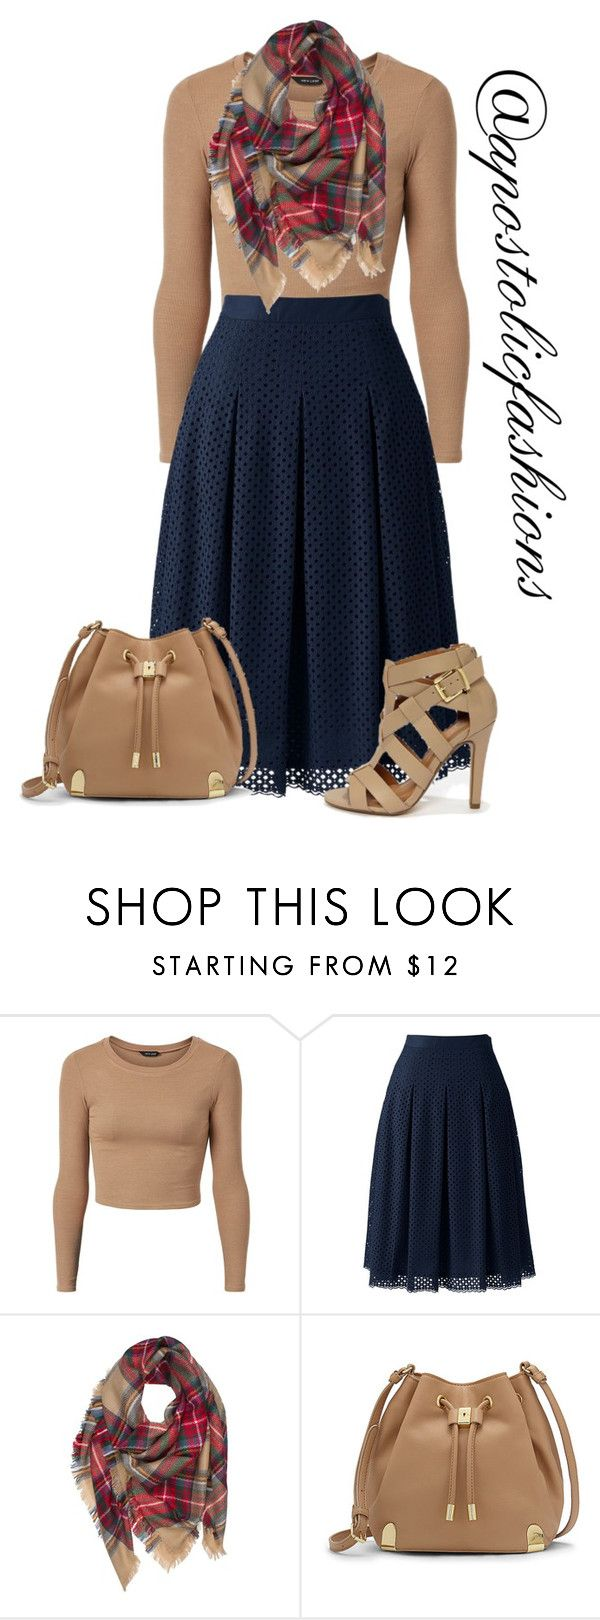 """Apostolic Fashions #1375"" by apostolicfashions ❤ liked on Polyvore featuring Lands' End, Vince Camuto, modestlykay and modestlywhit"